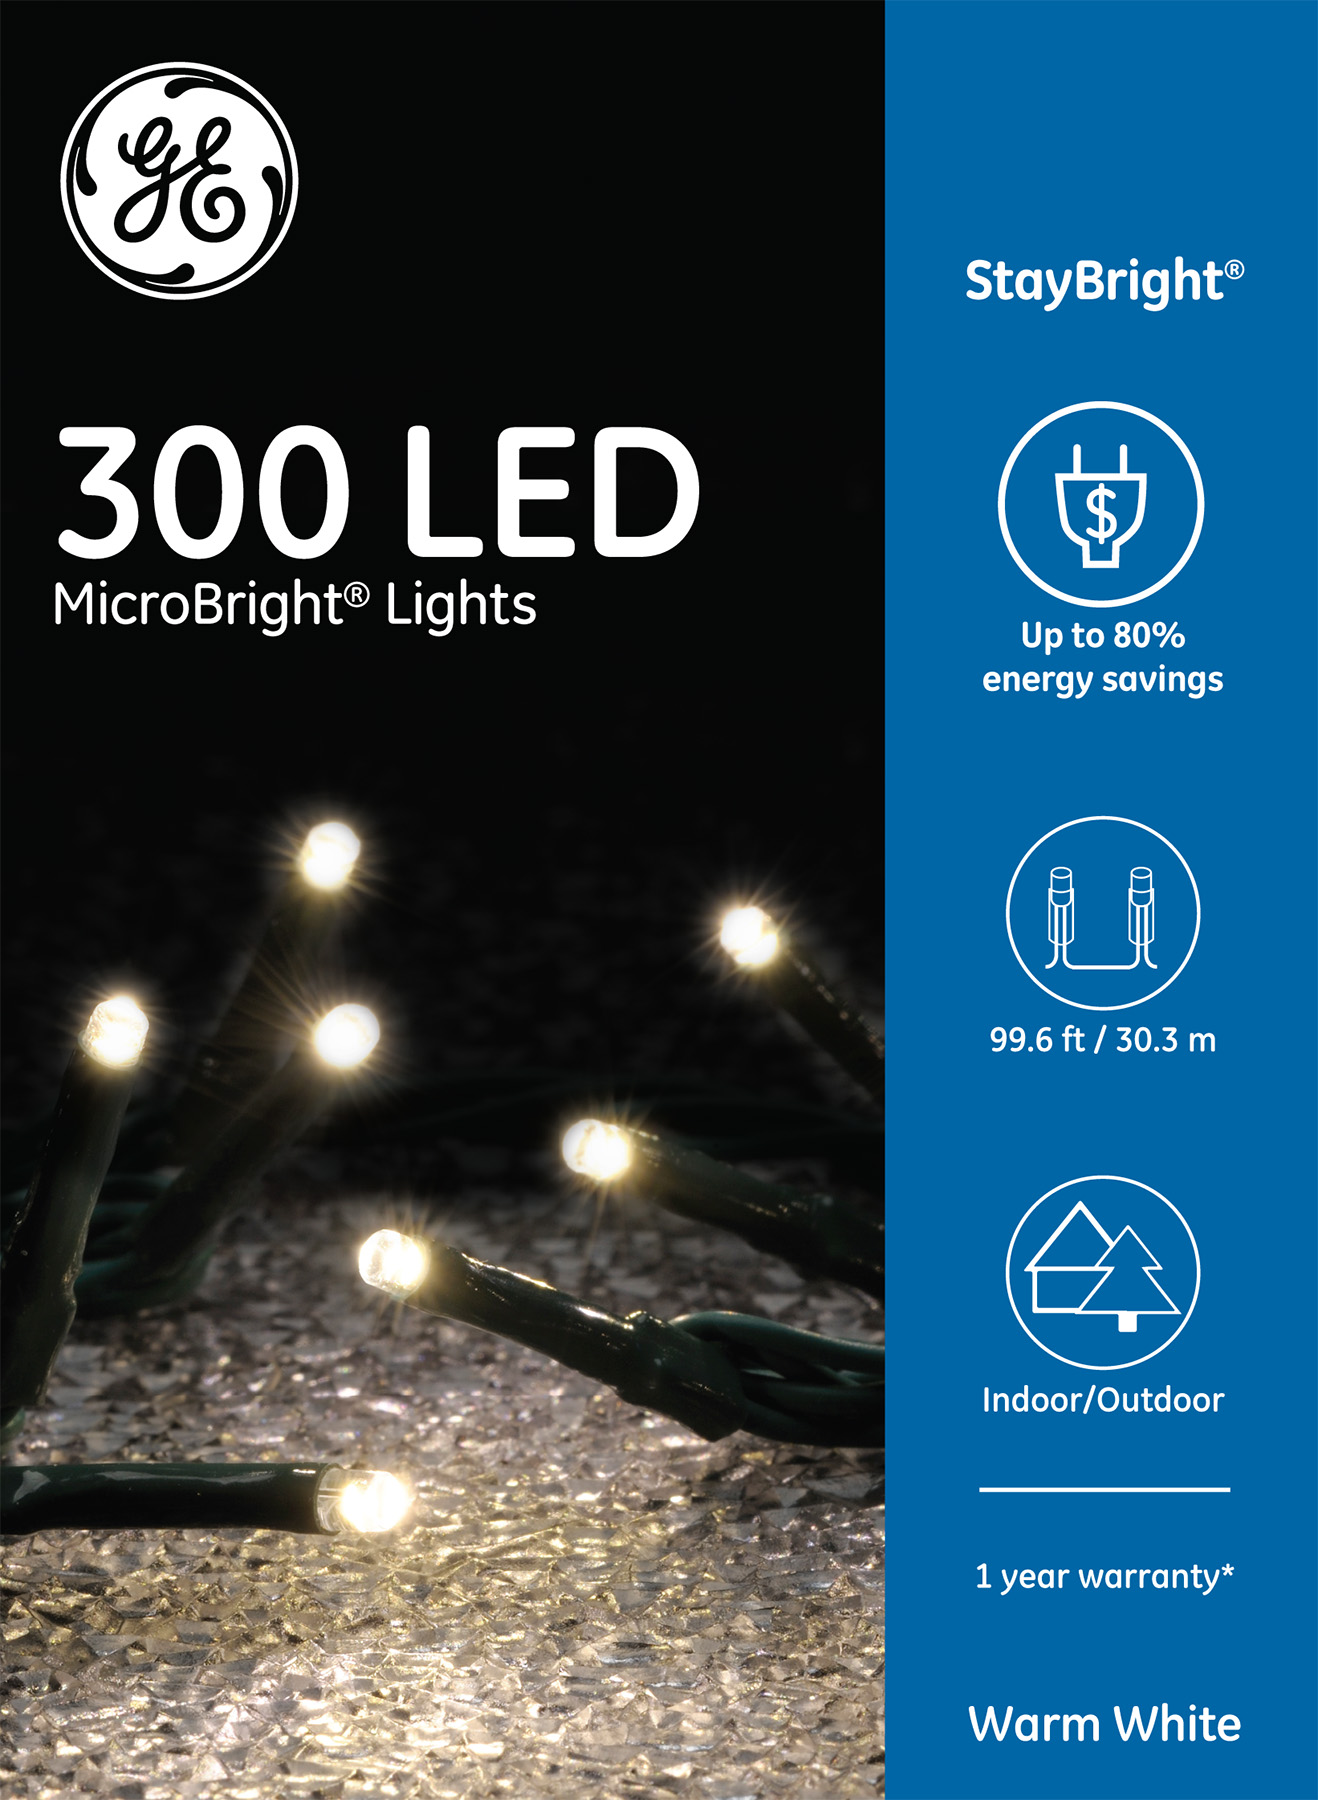 93056 Ge Staybright Led Microbright Lights 300ct Warm